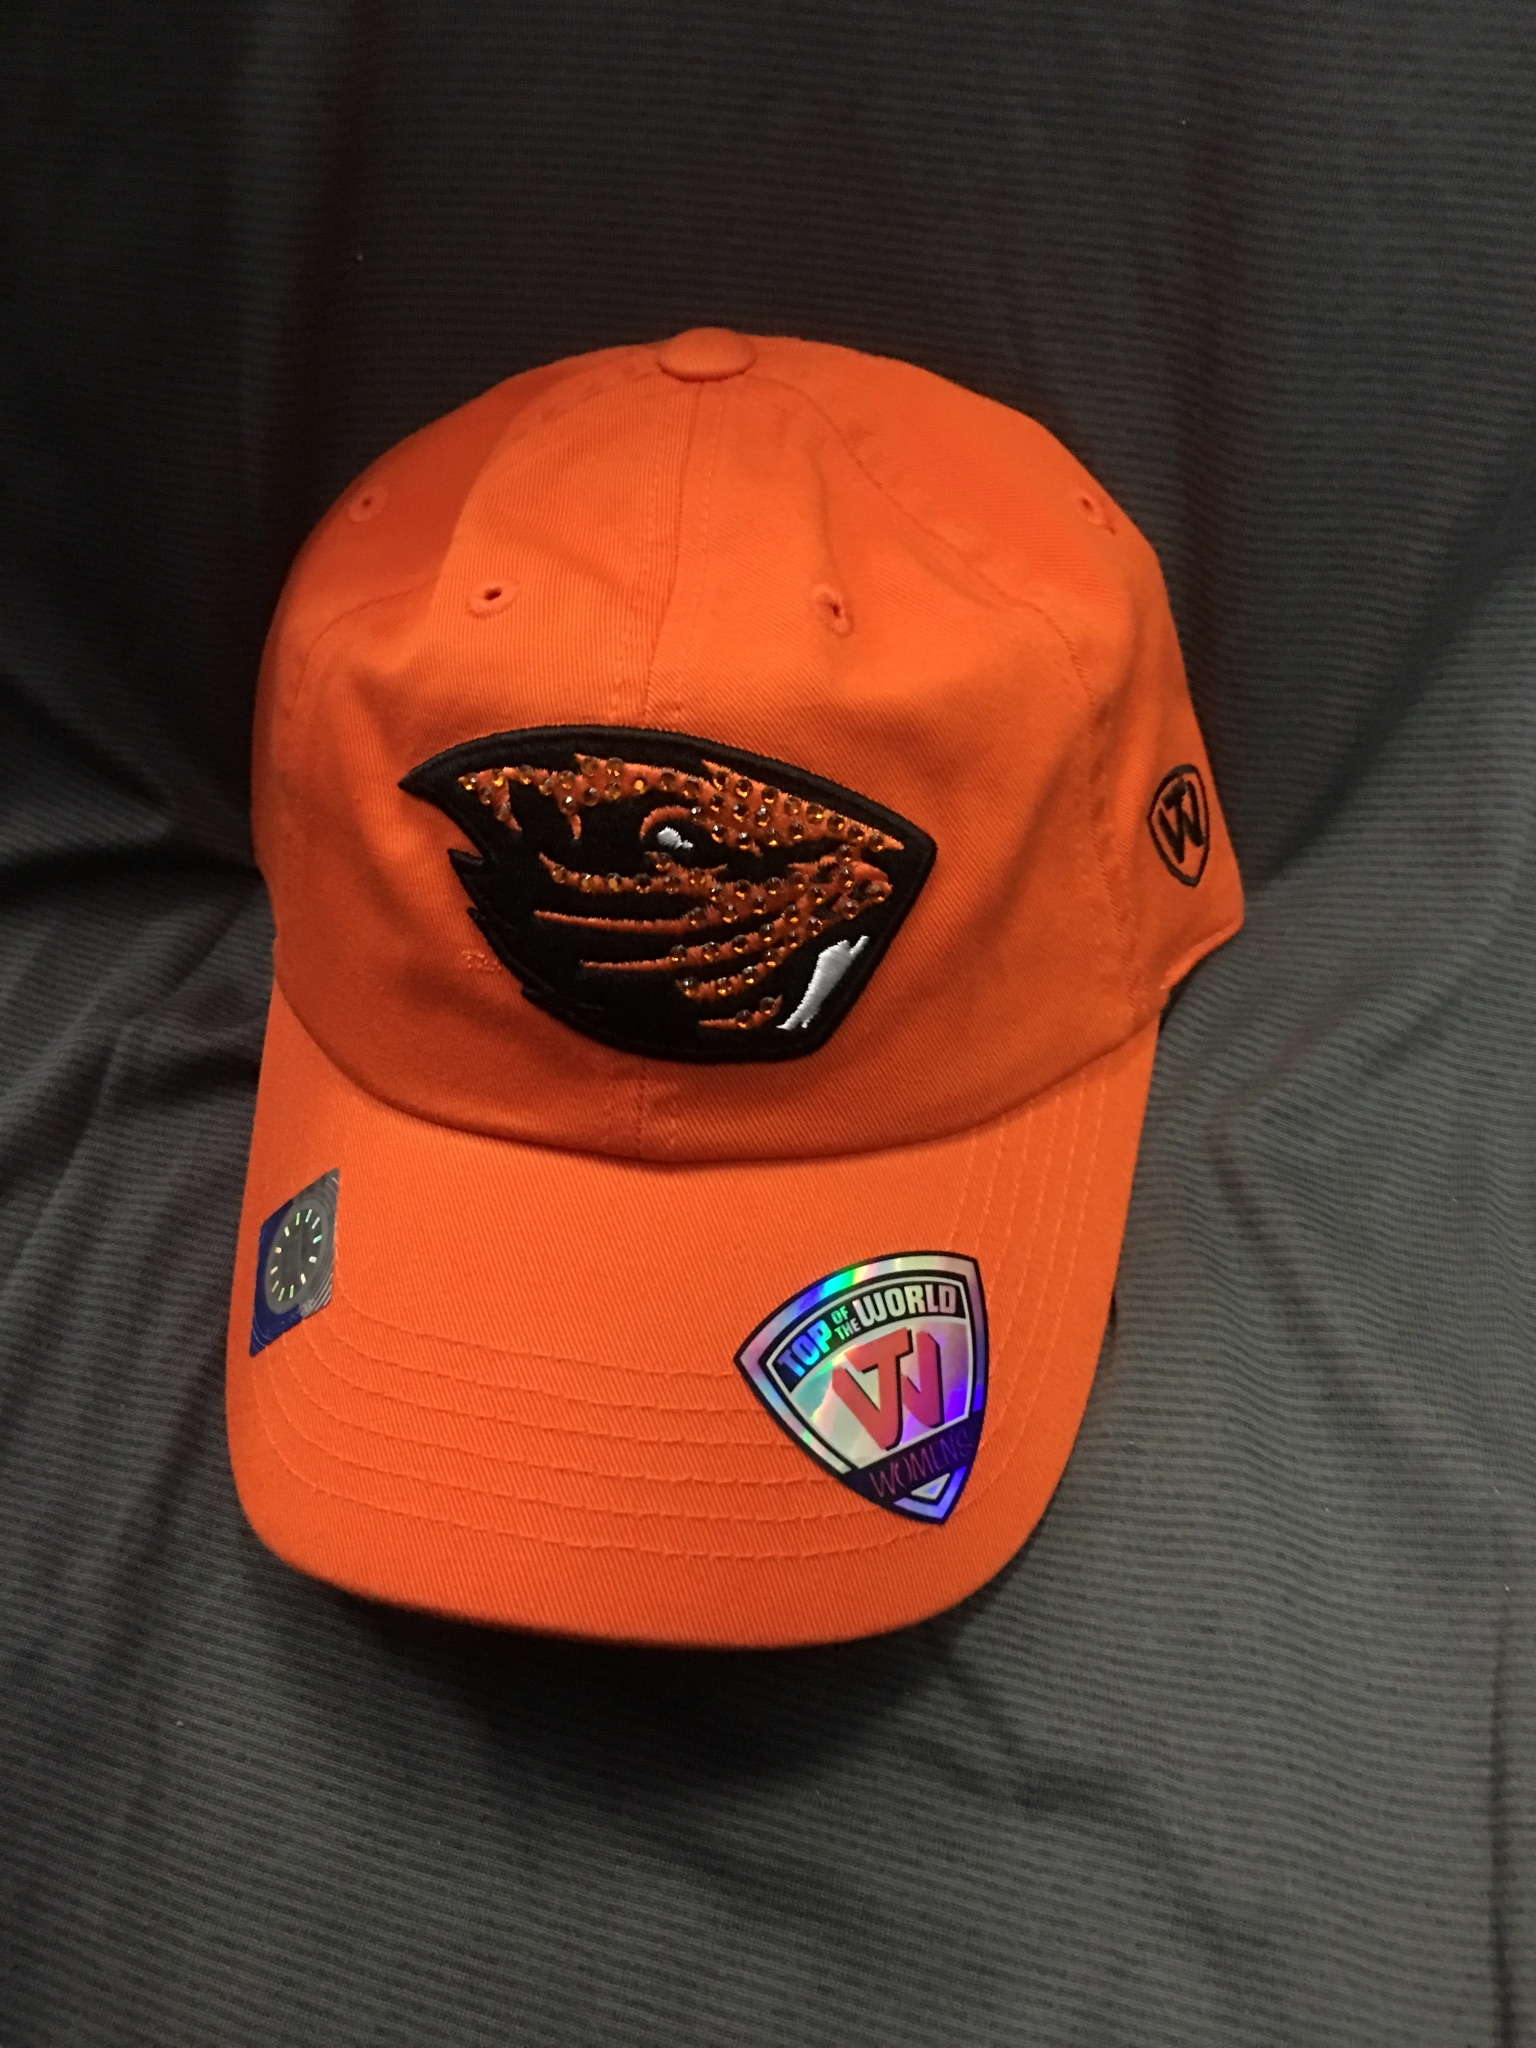 Oregon State Beavers Bling hat